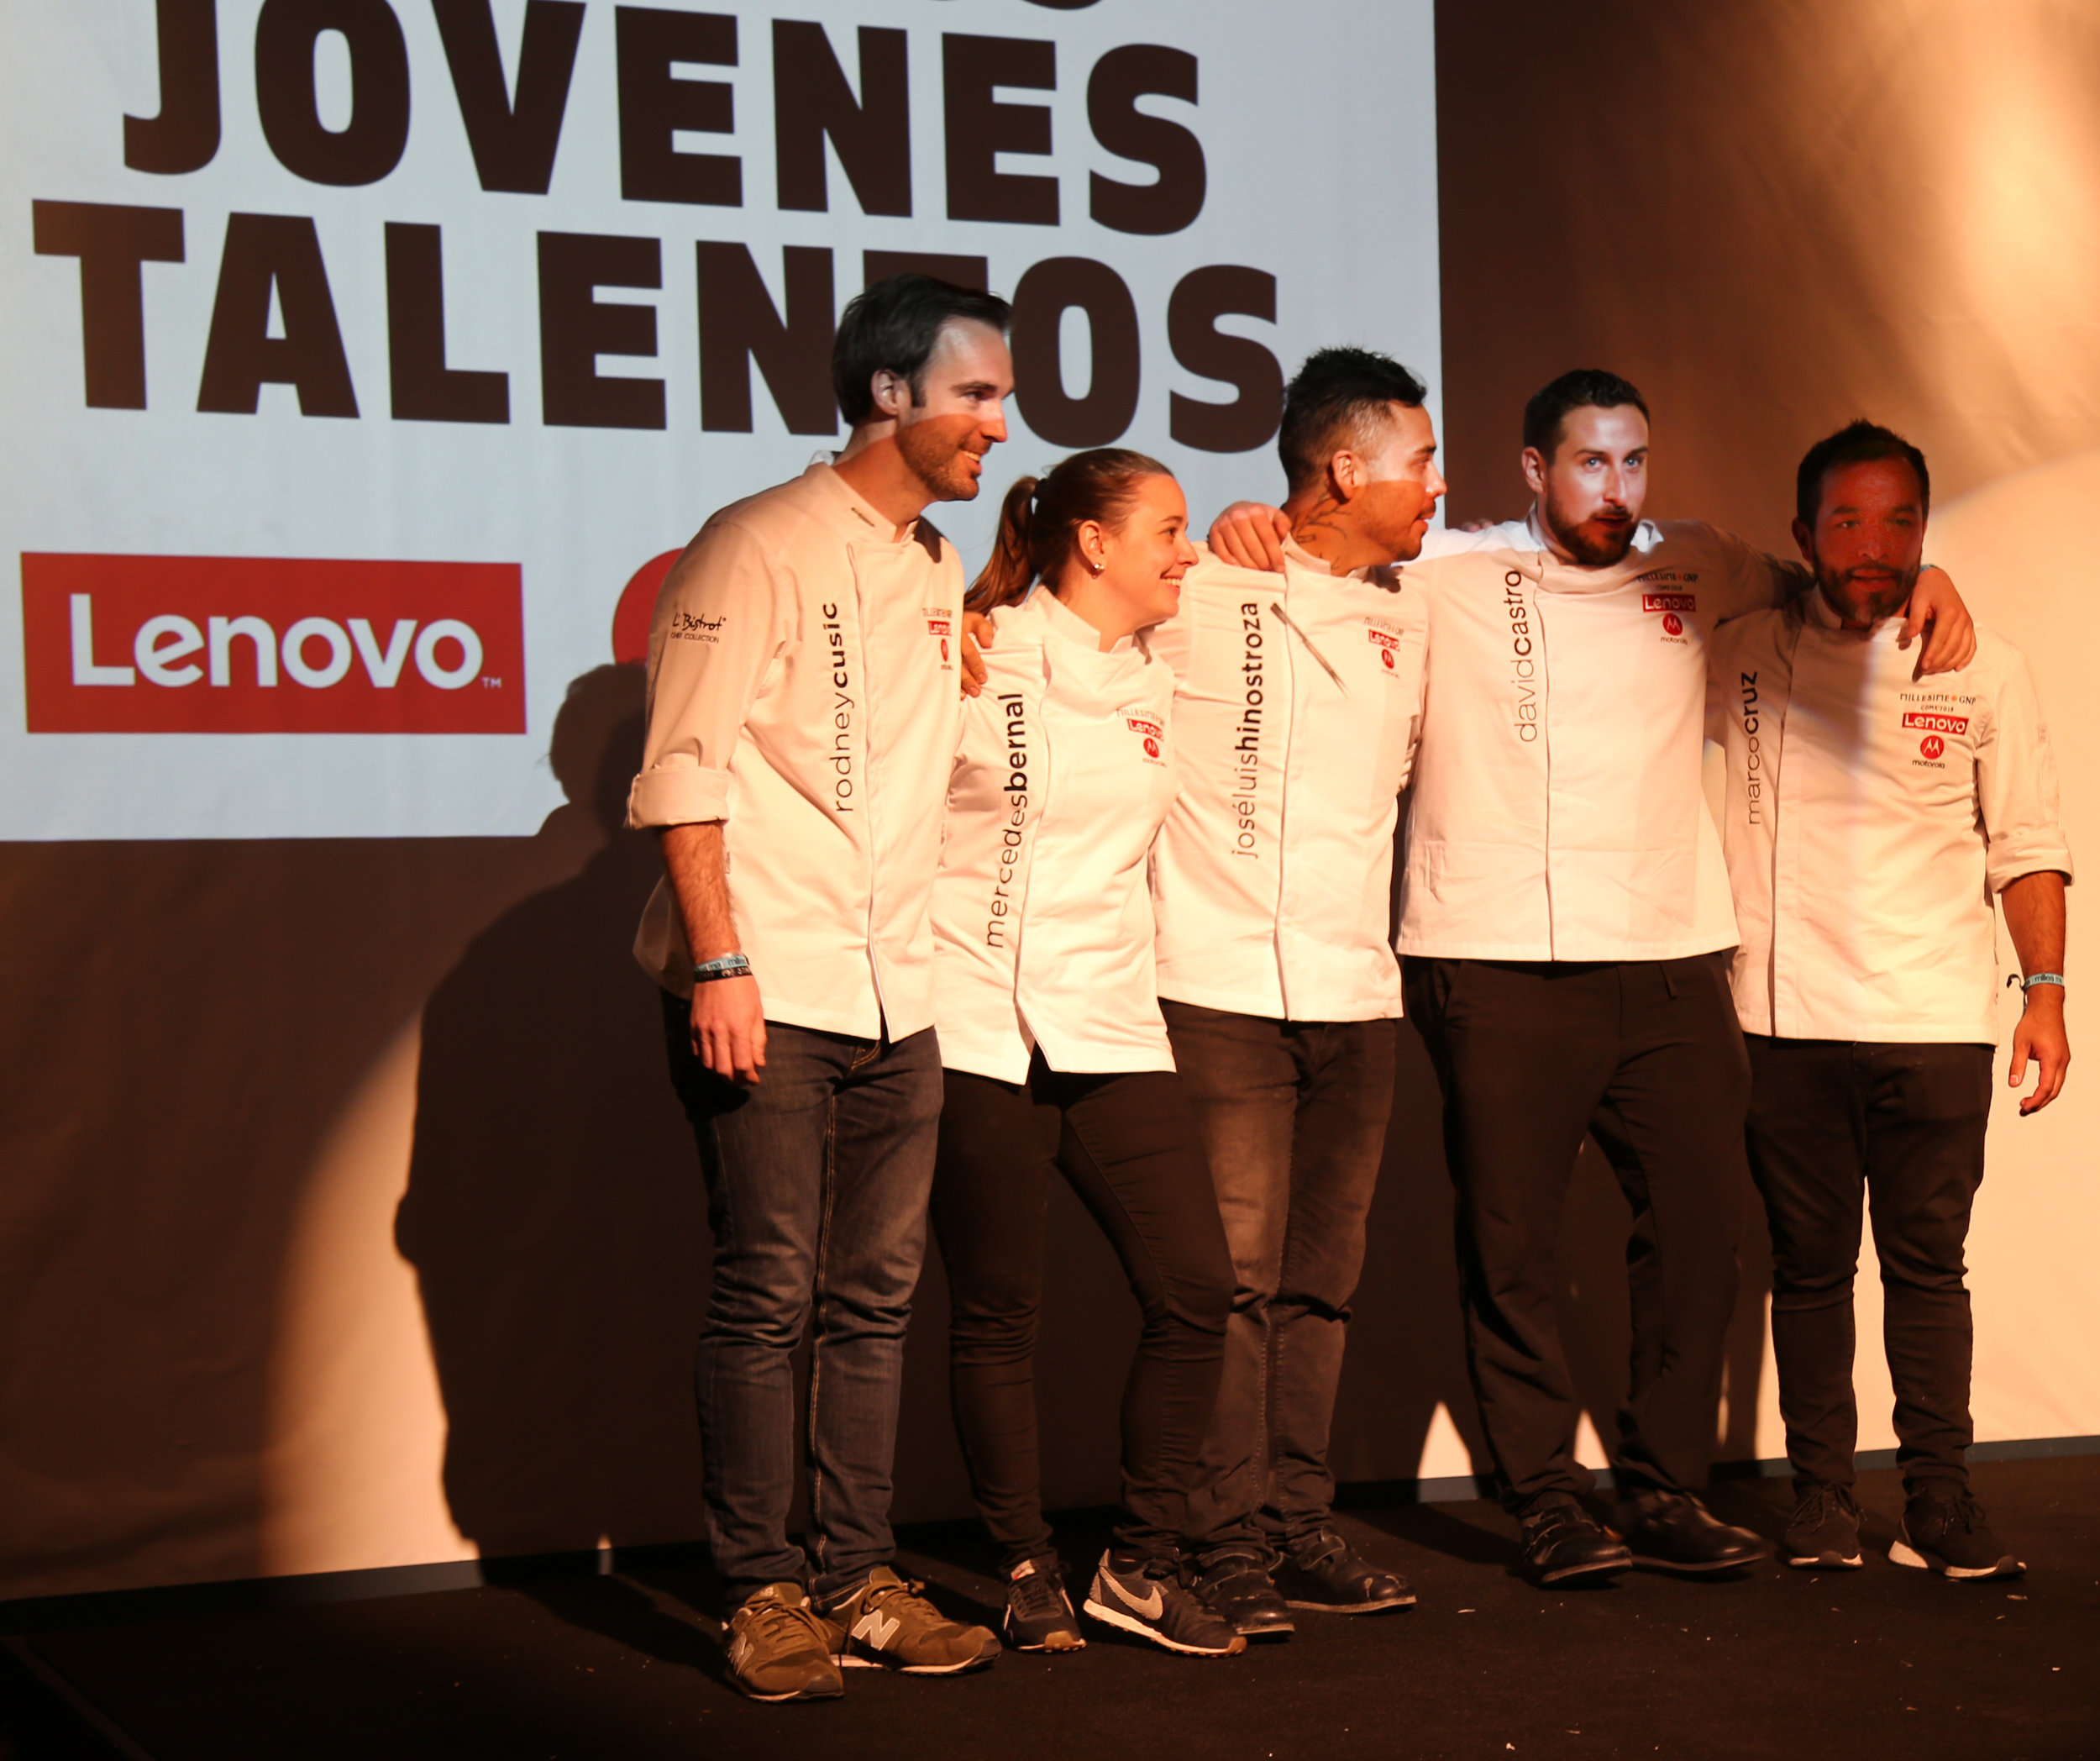 candidates for the young talent award, include the chefs of Meroma,, winner Hinostroza, Castro Hussong and Marco Cruz